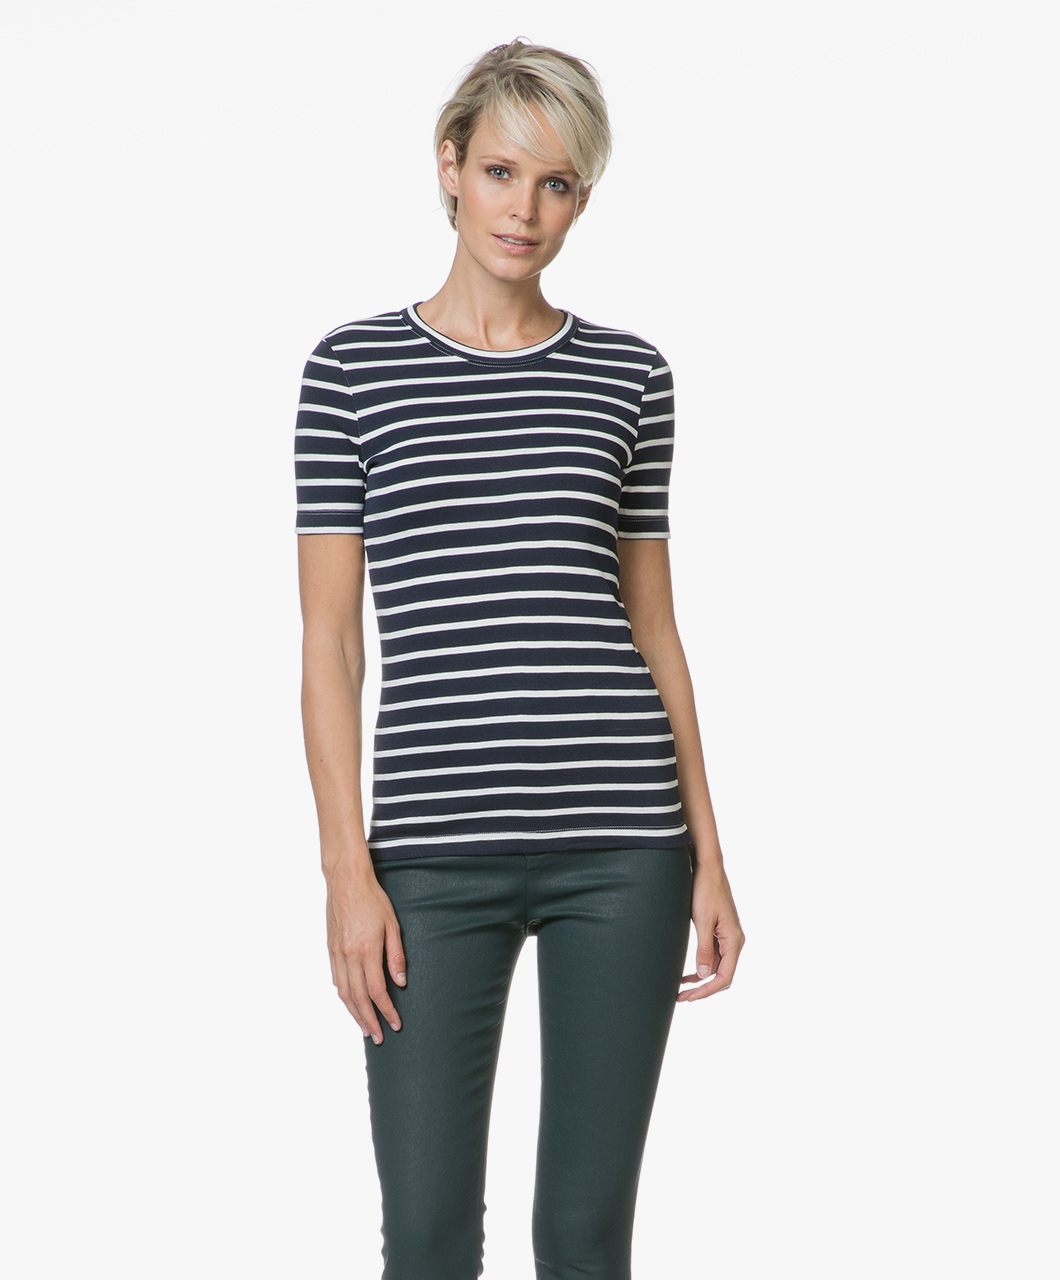 Bateau Women T Striped Shirt Petit Smokingmarshmallow qSF6Hn